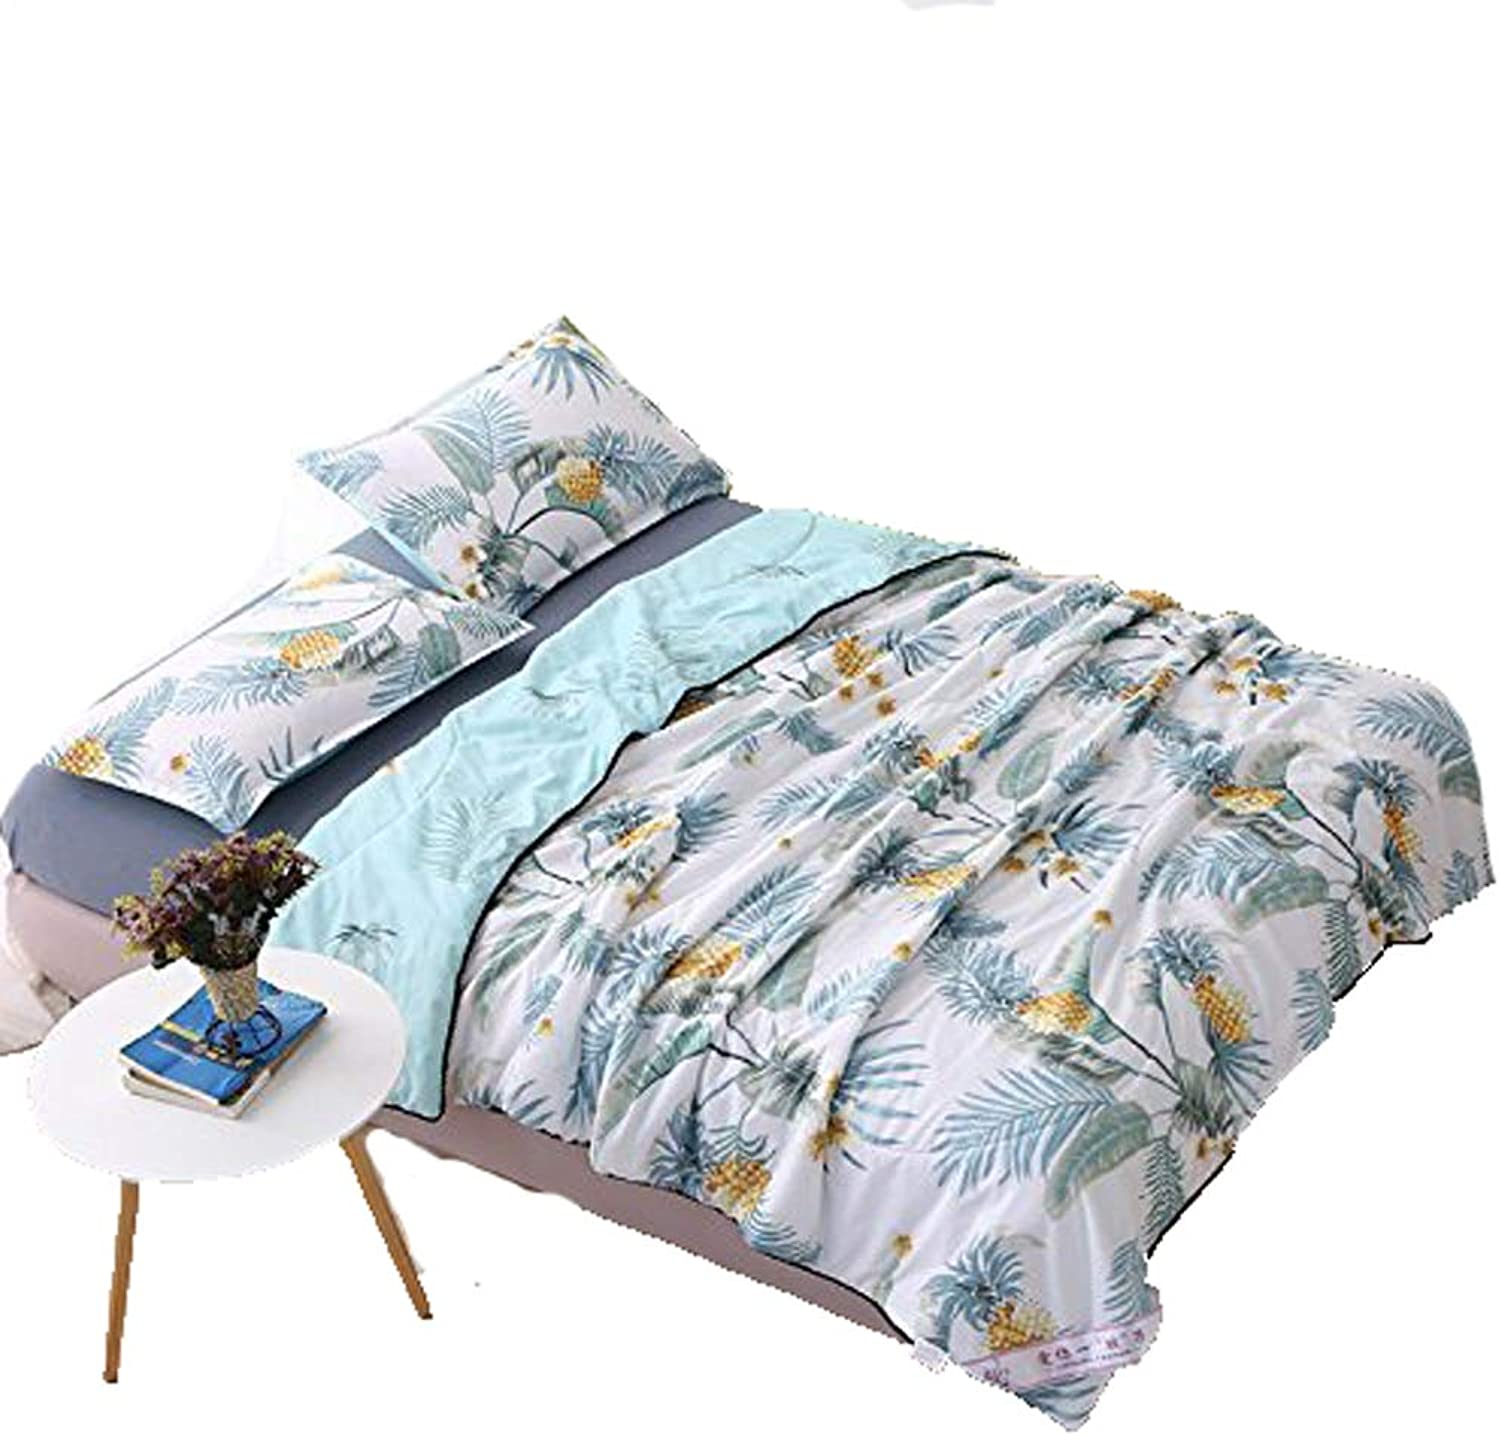 KFZ Summer Cool Quilt Comforter for Bed Set No Pillow Cover Sheets ZL Teens Twin Full Queen Size Forest Fresh Pineapple Funny Park Design for Kids Adults (Fresh Pineapple,Green, Twin,59 x79 )